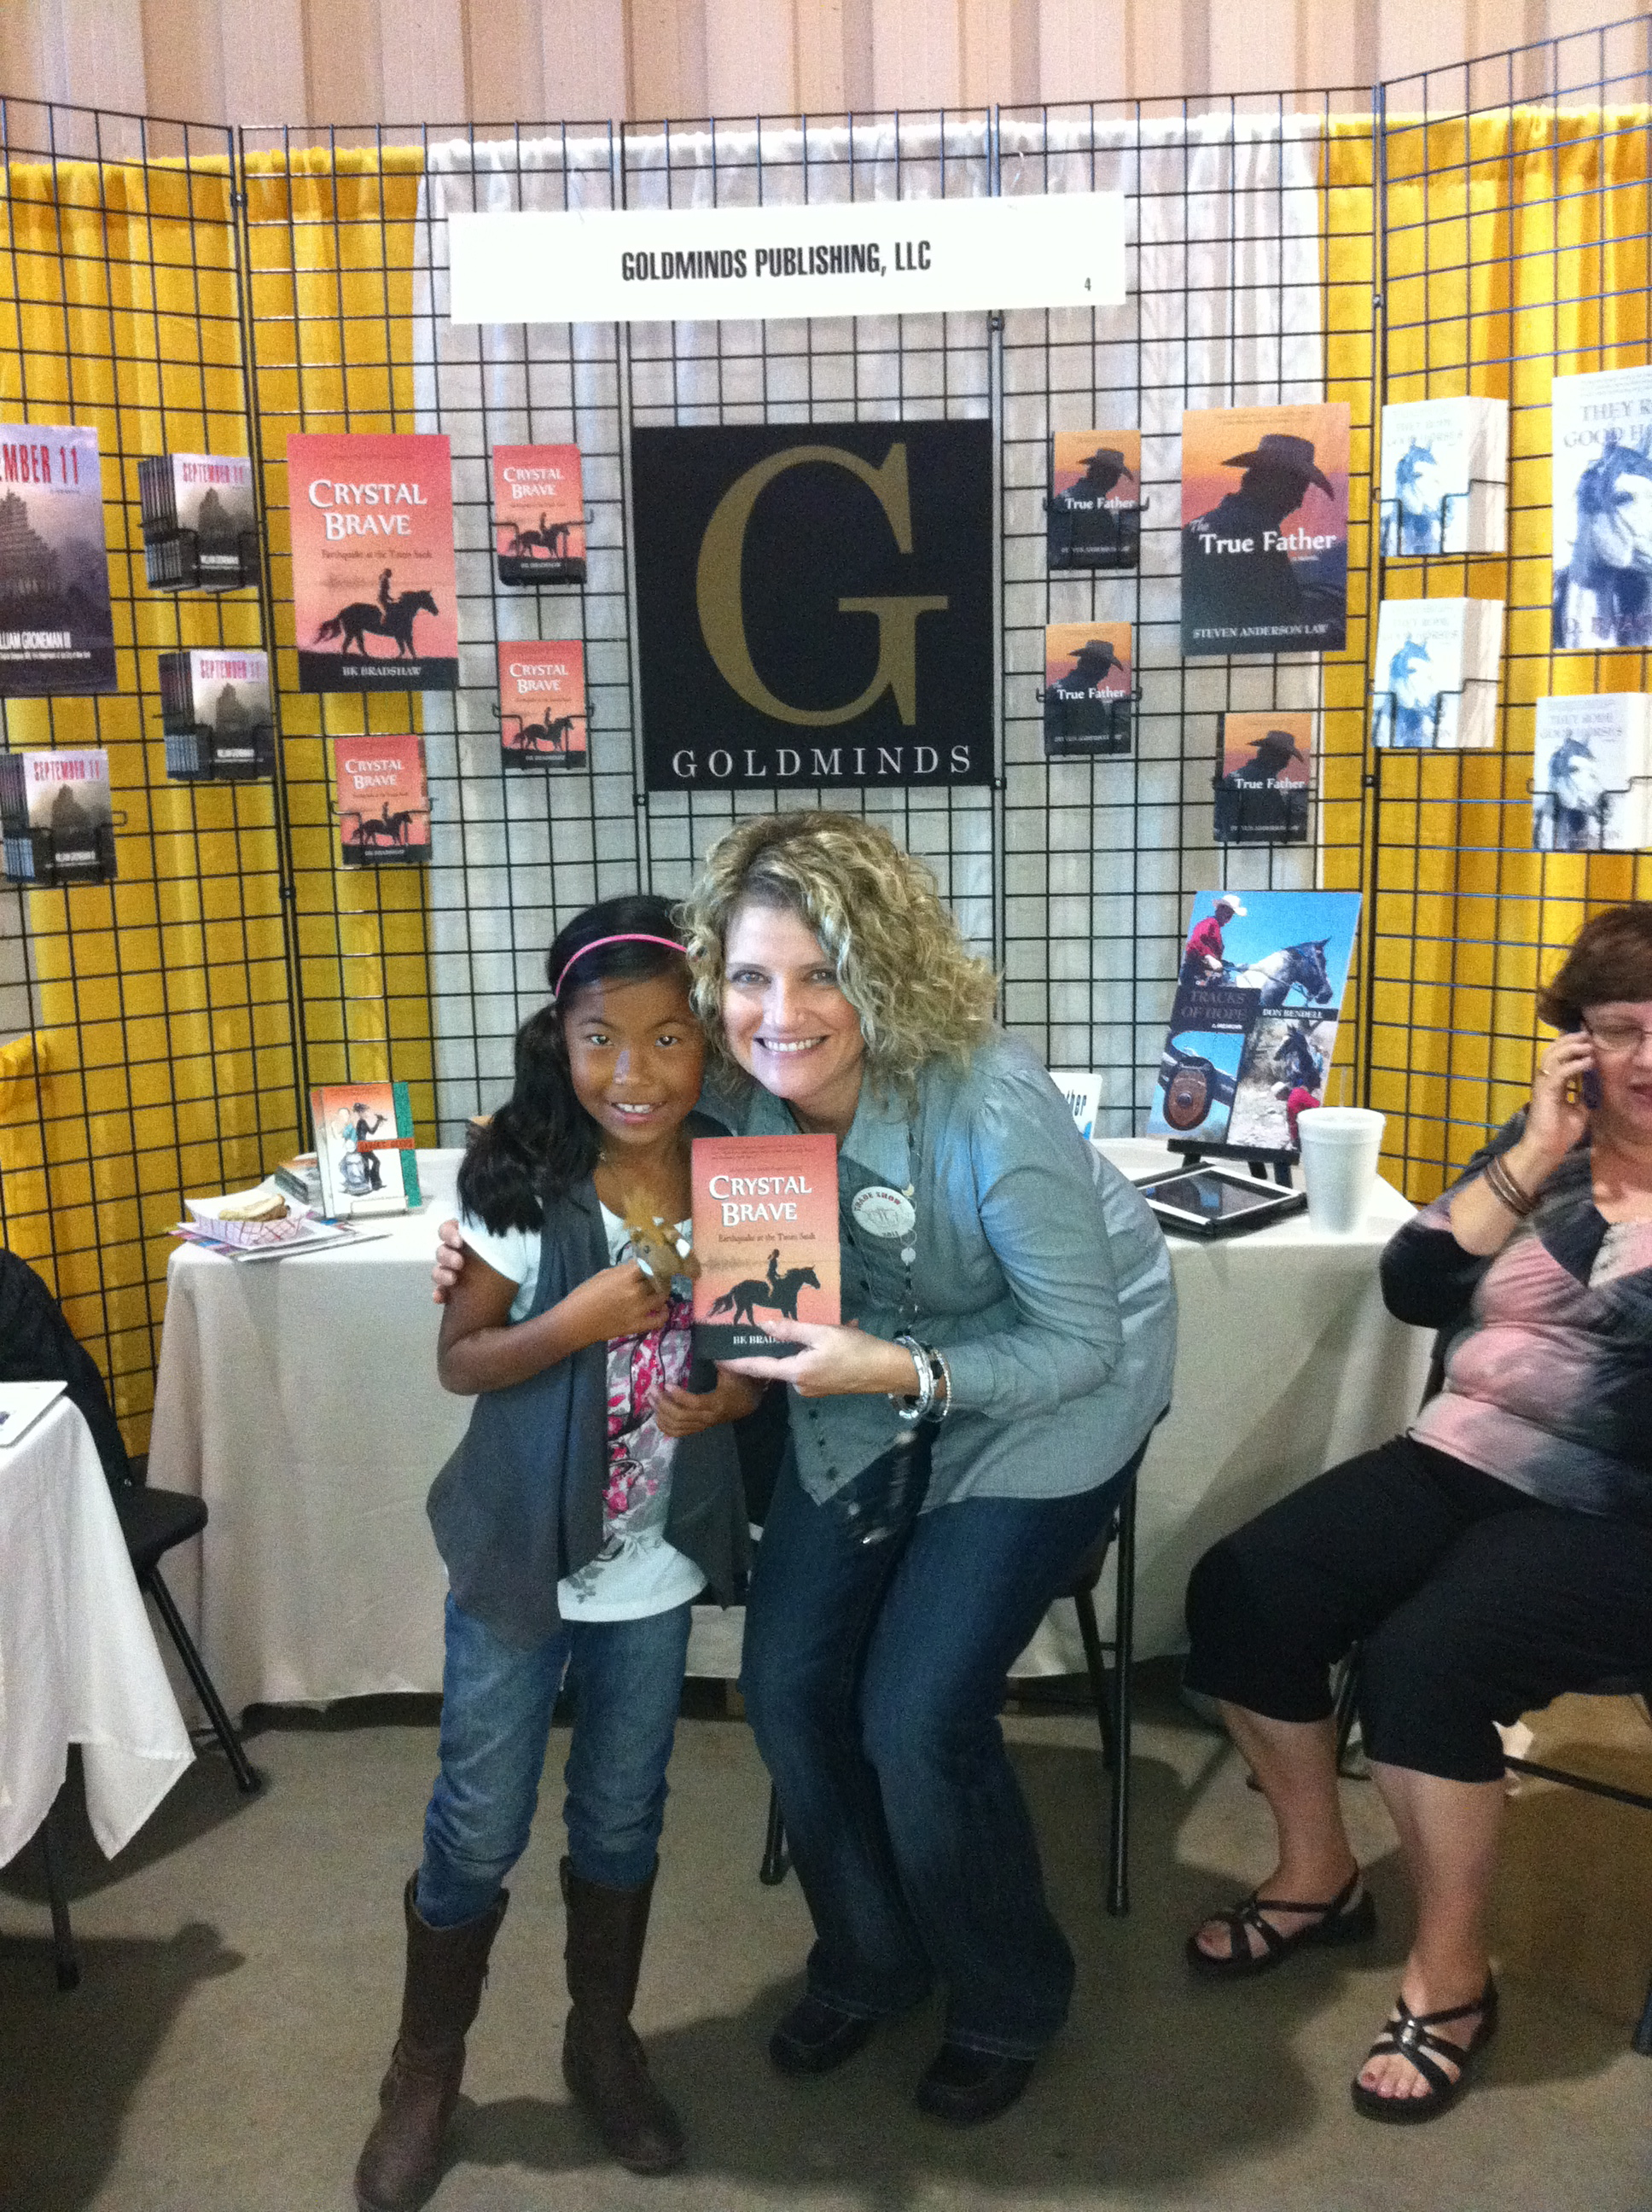 My Very First Book Signing!